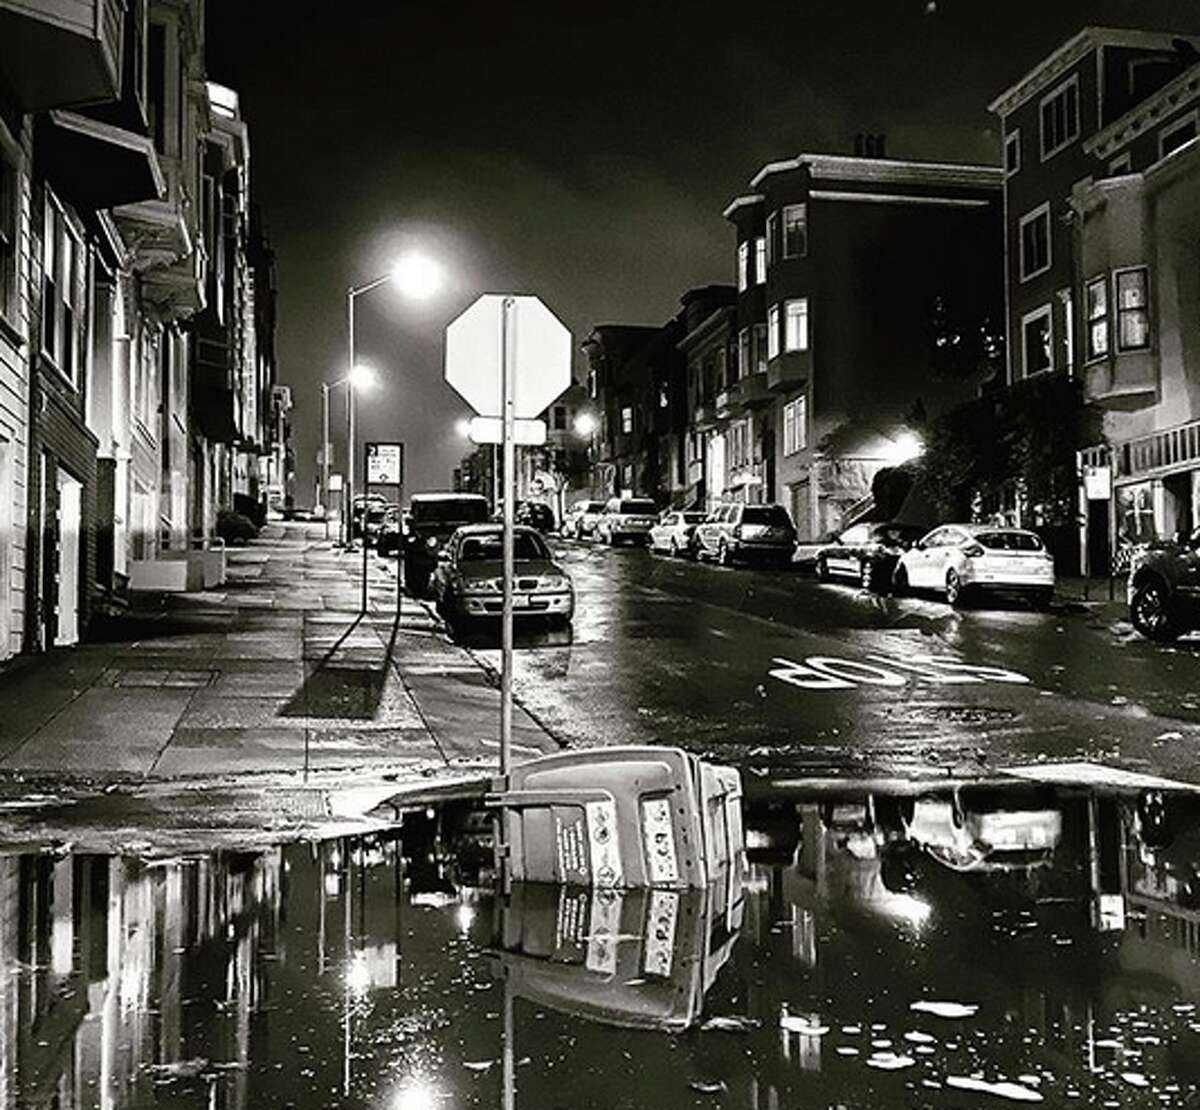 Street flooding in North Beach from the rainstorm that swept the region on Tuesday night, Nov. 26, 2019.